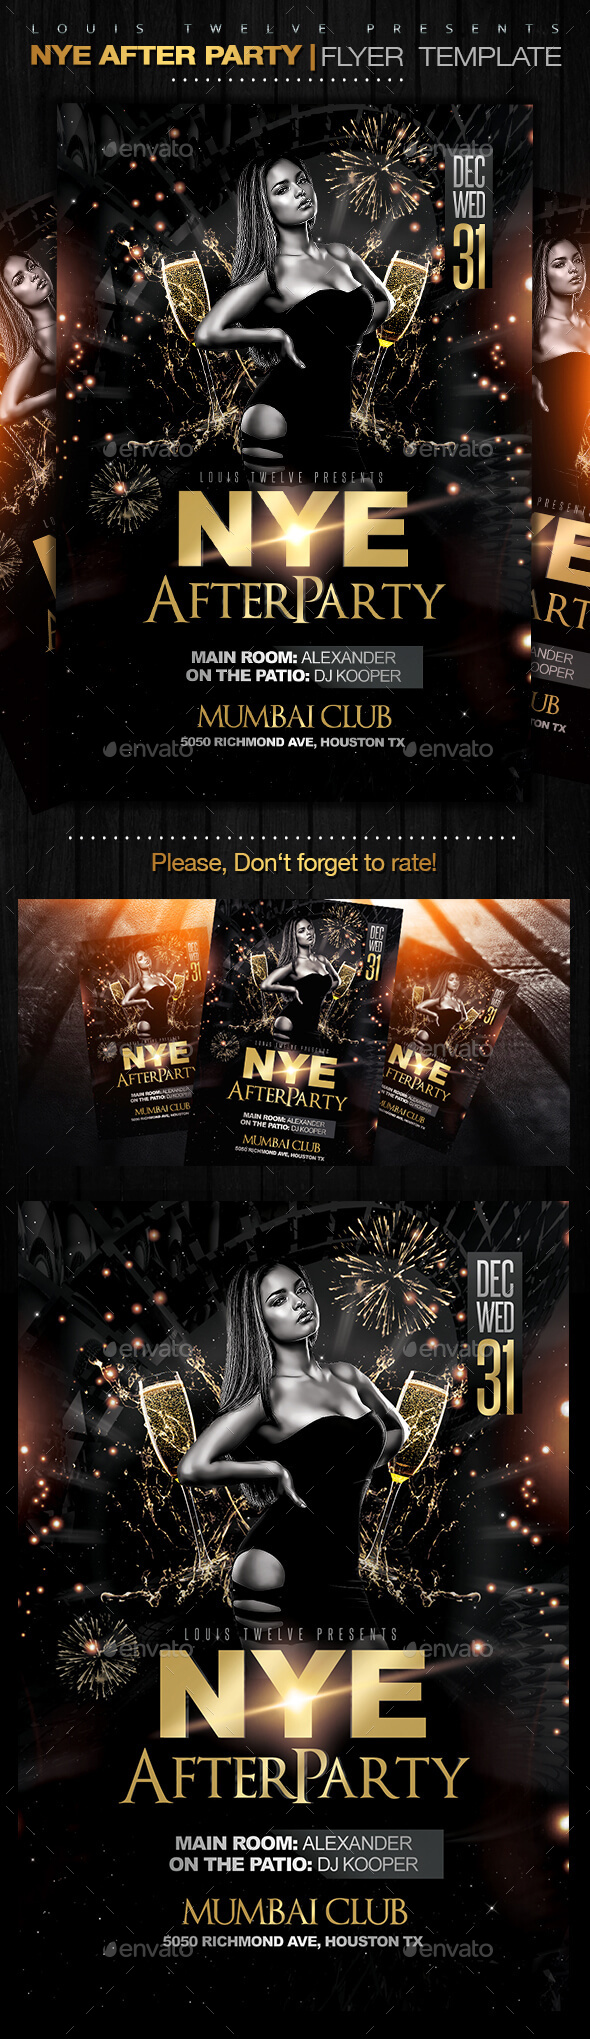 NYE After Party Flyer Template - Clubs & Parties Events